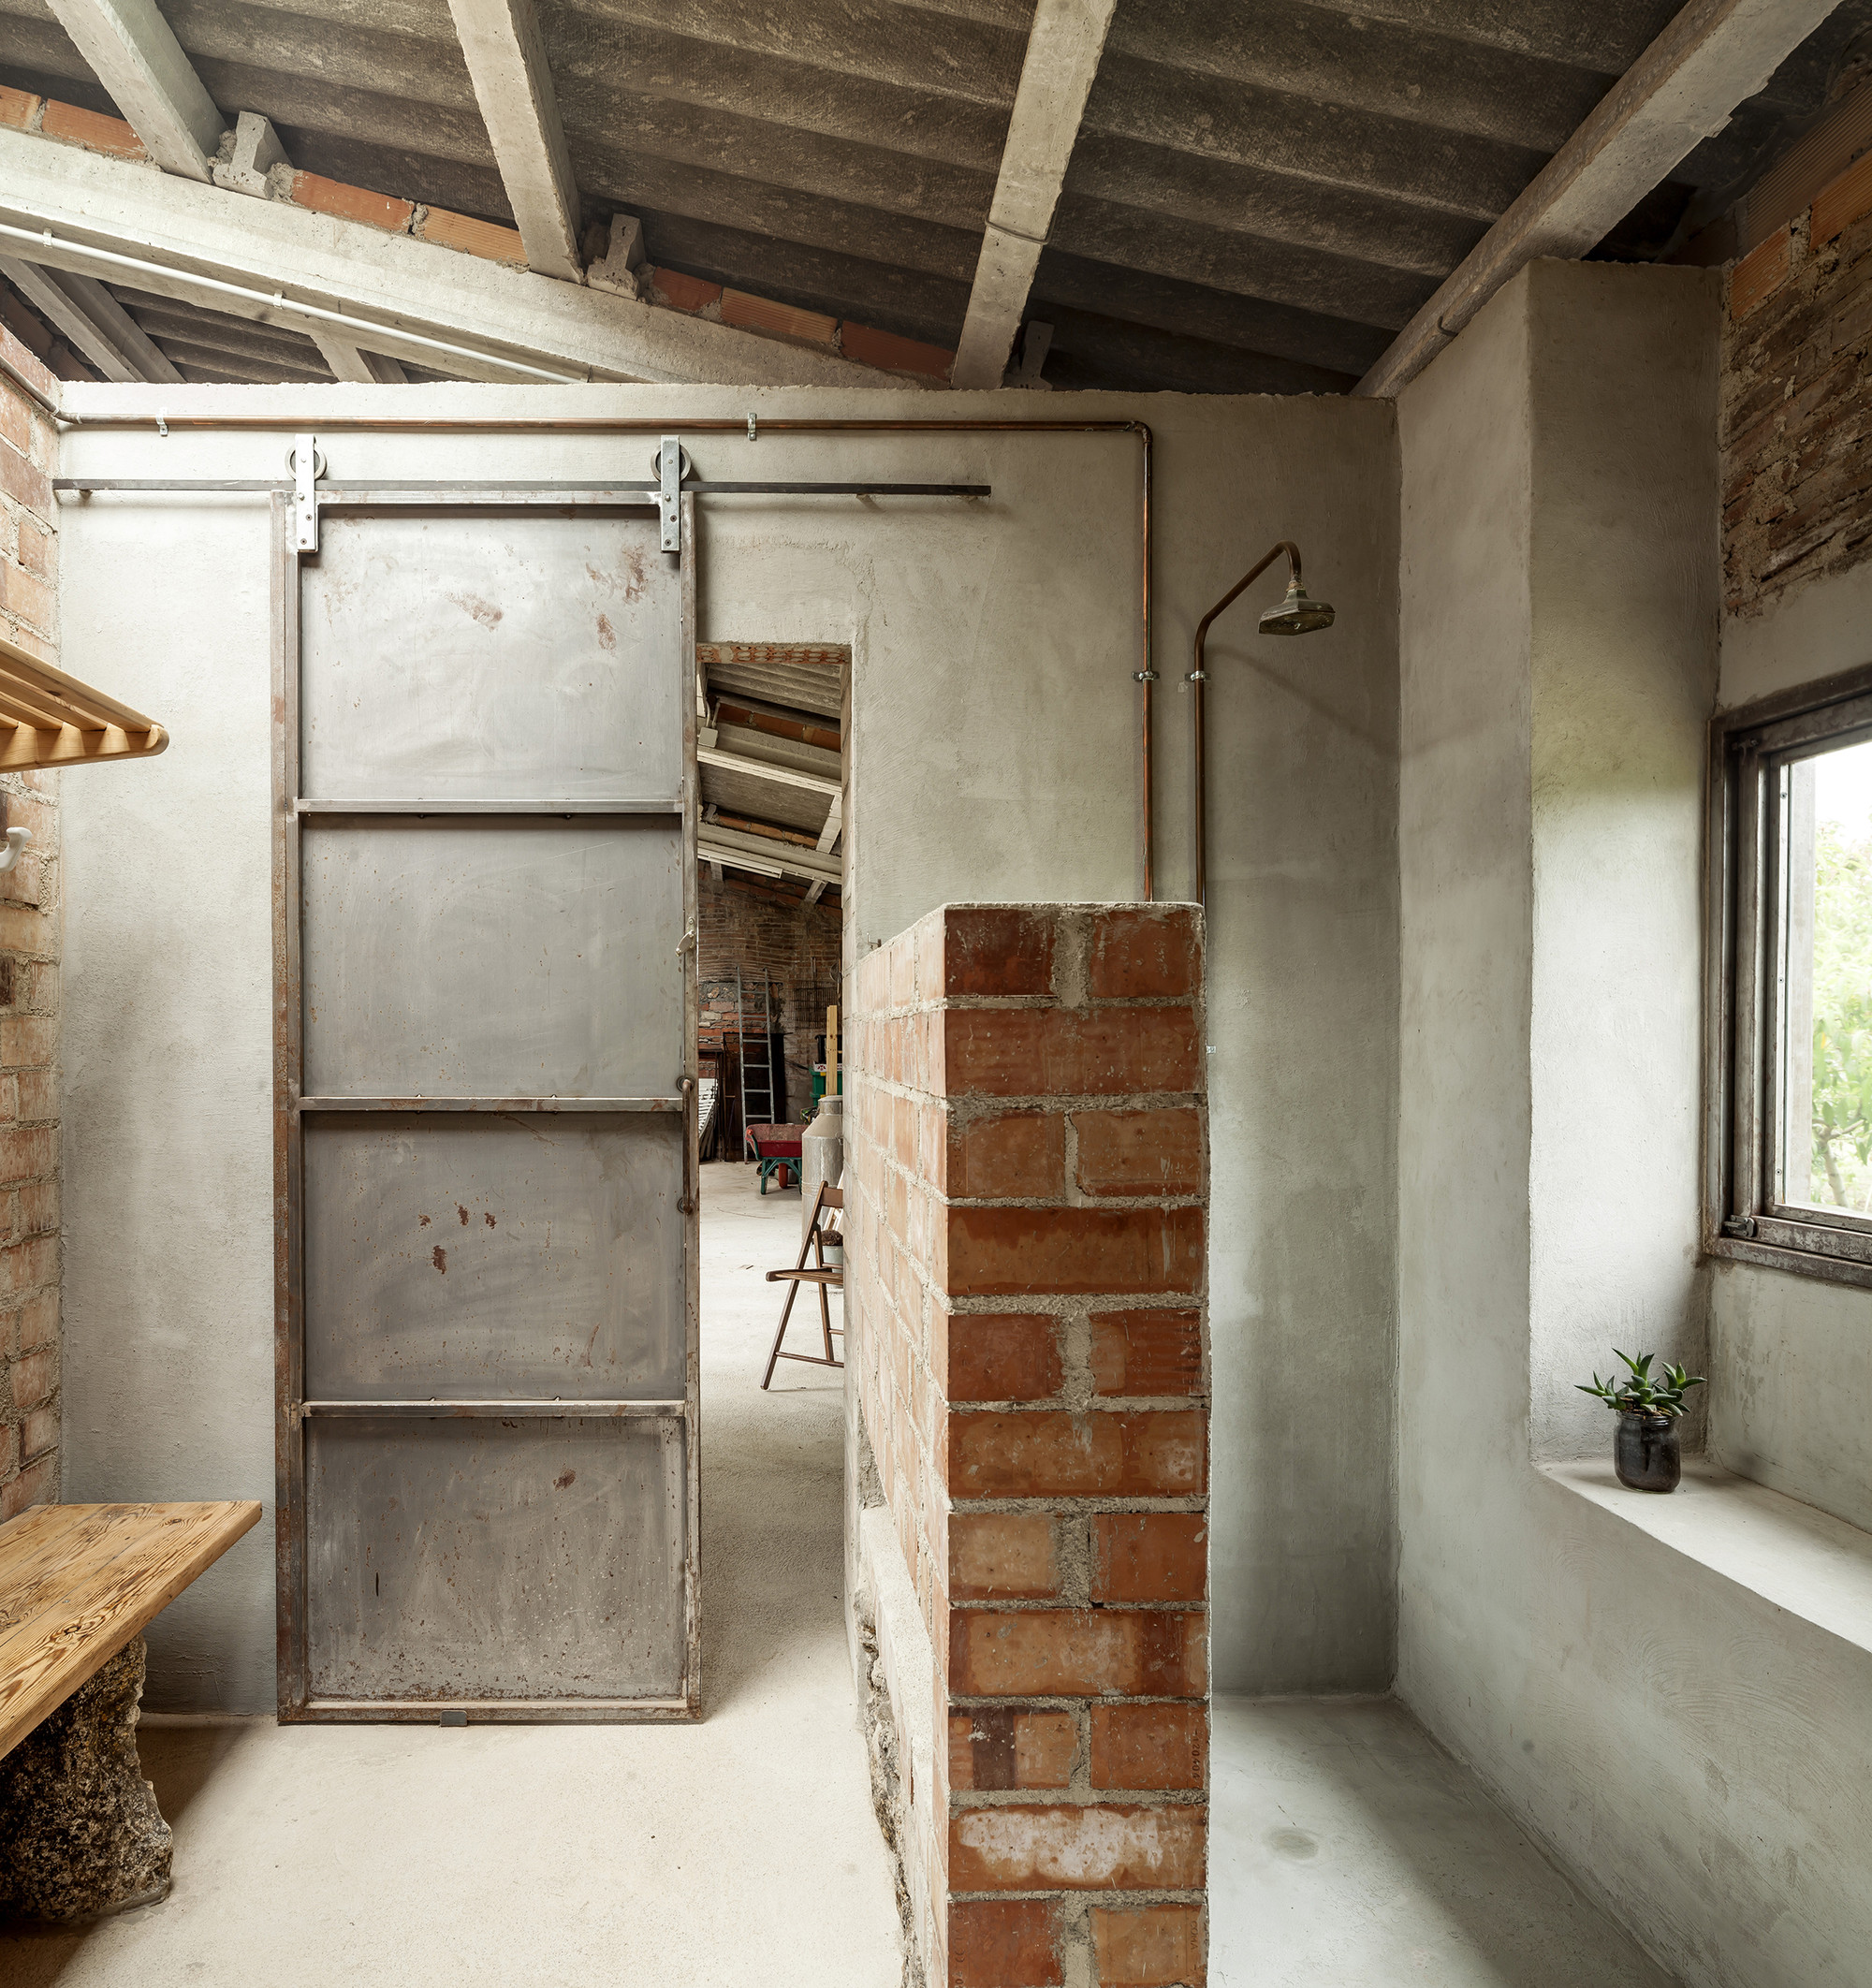 Gallery of Dressing room for a garden with a pond / Clara Nubiola - 5